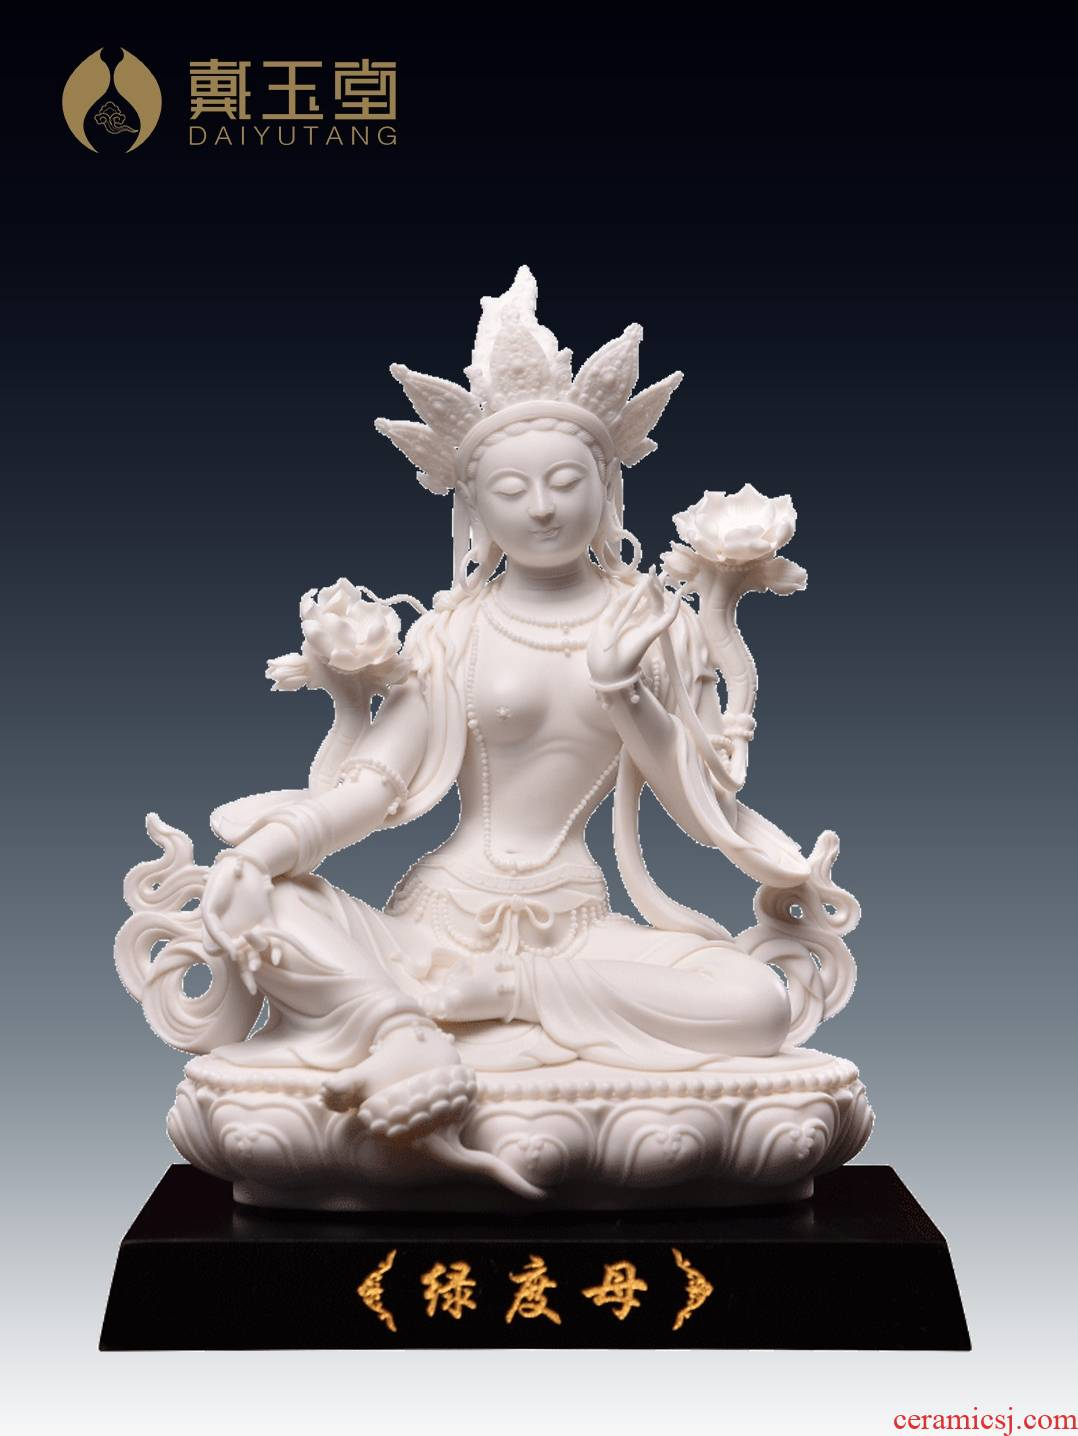 Yutang dai green tara ceramic sect Buddhism guanyin Buddha enshrined household its art furnishing articles at home